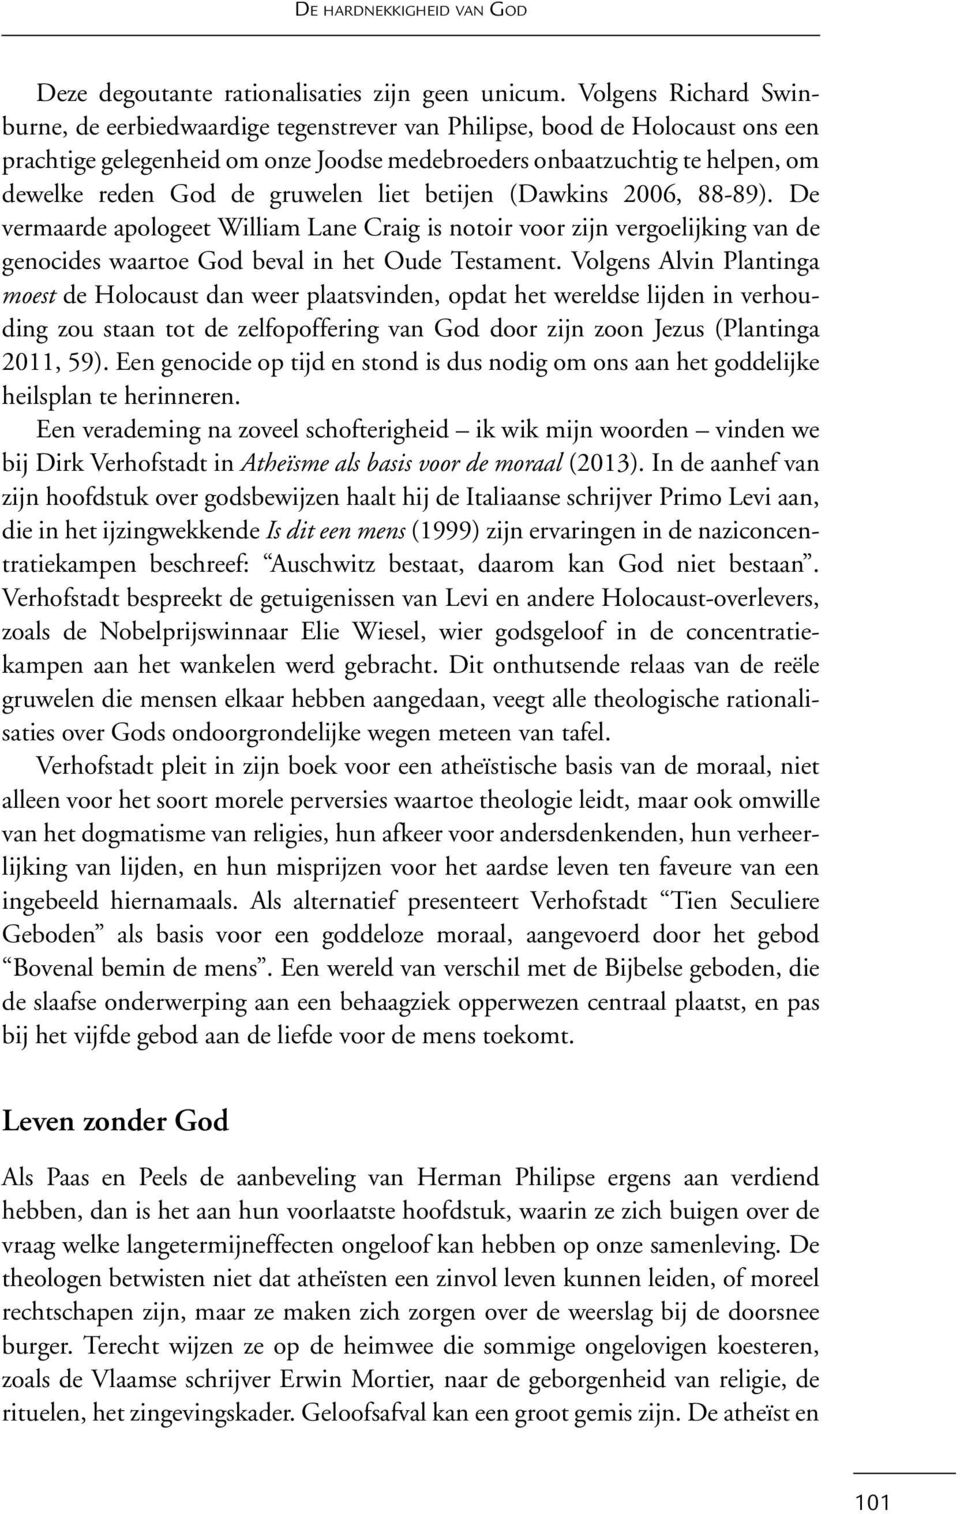 gruwelen liet betijen (Dawkins 2006, 88-89). De vermaarde apologeet William Lane Craig is notoir voor zijn vergoelijking van de genocides waartoe God beval in het Oude Testament.